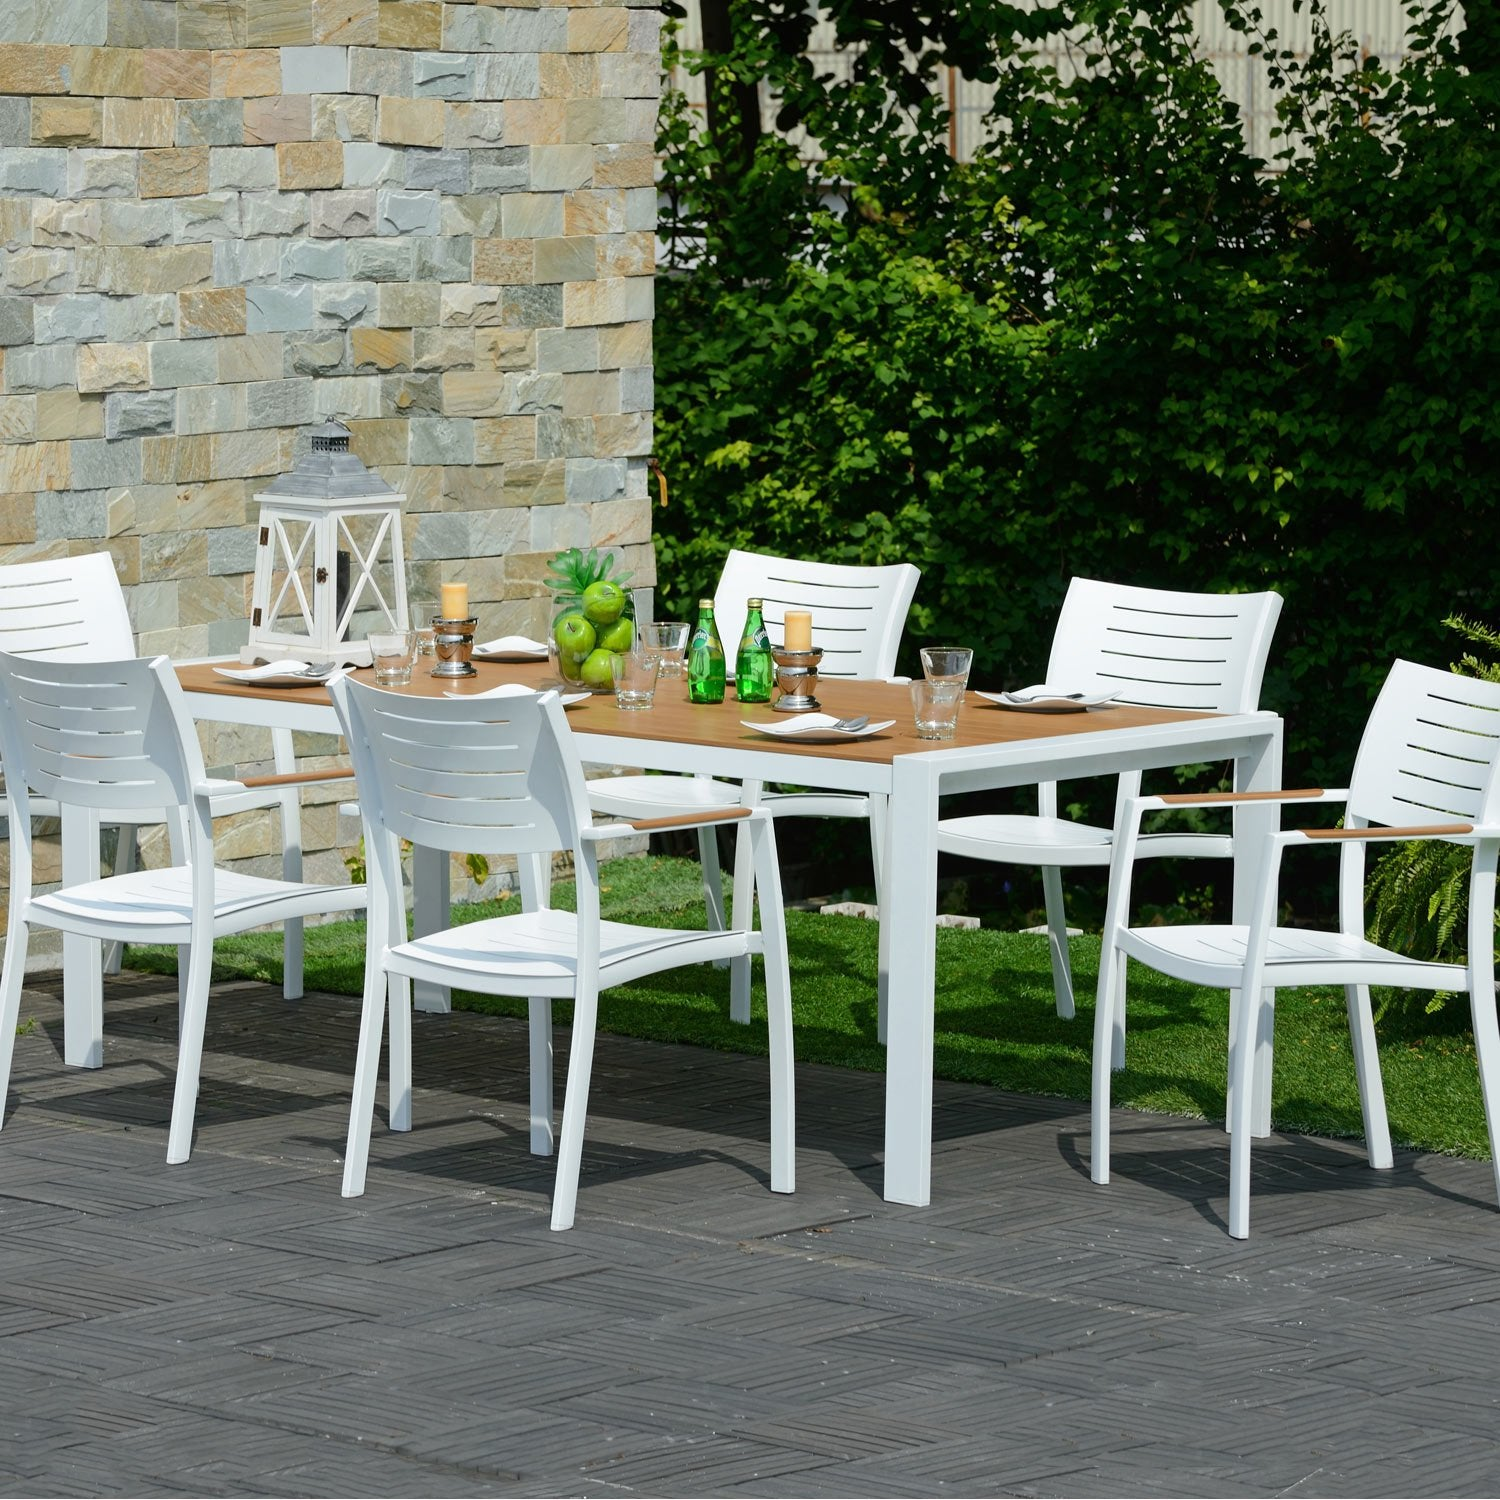 Salon de jardin port nelson brun marron 6 personnes - Salon de jardin leroy merlin grenoble ...